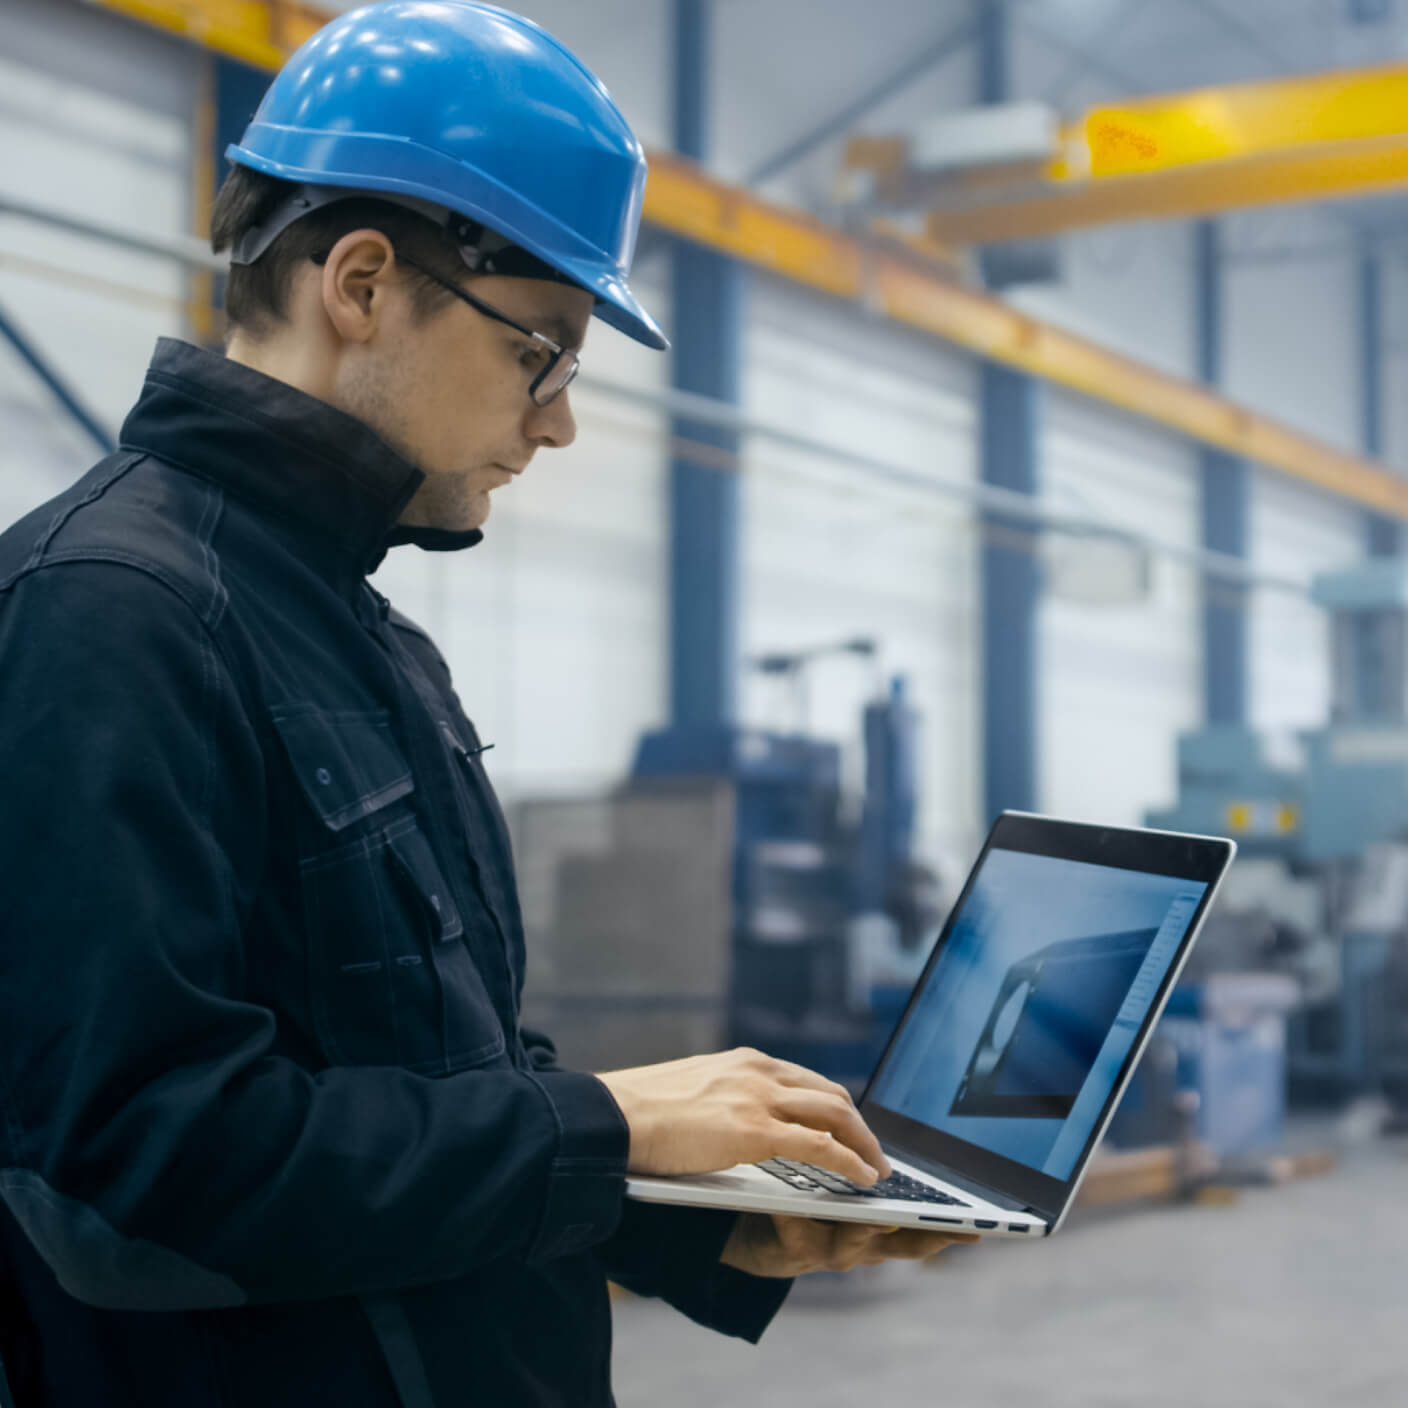 worker in industrial setting with hardhat and laptop